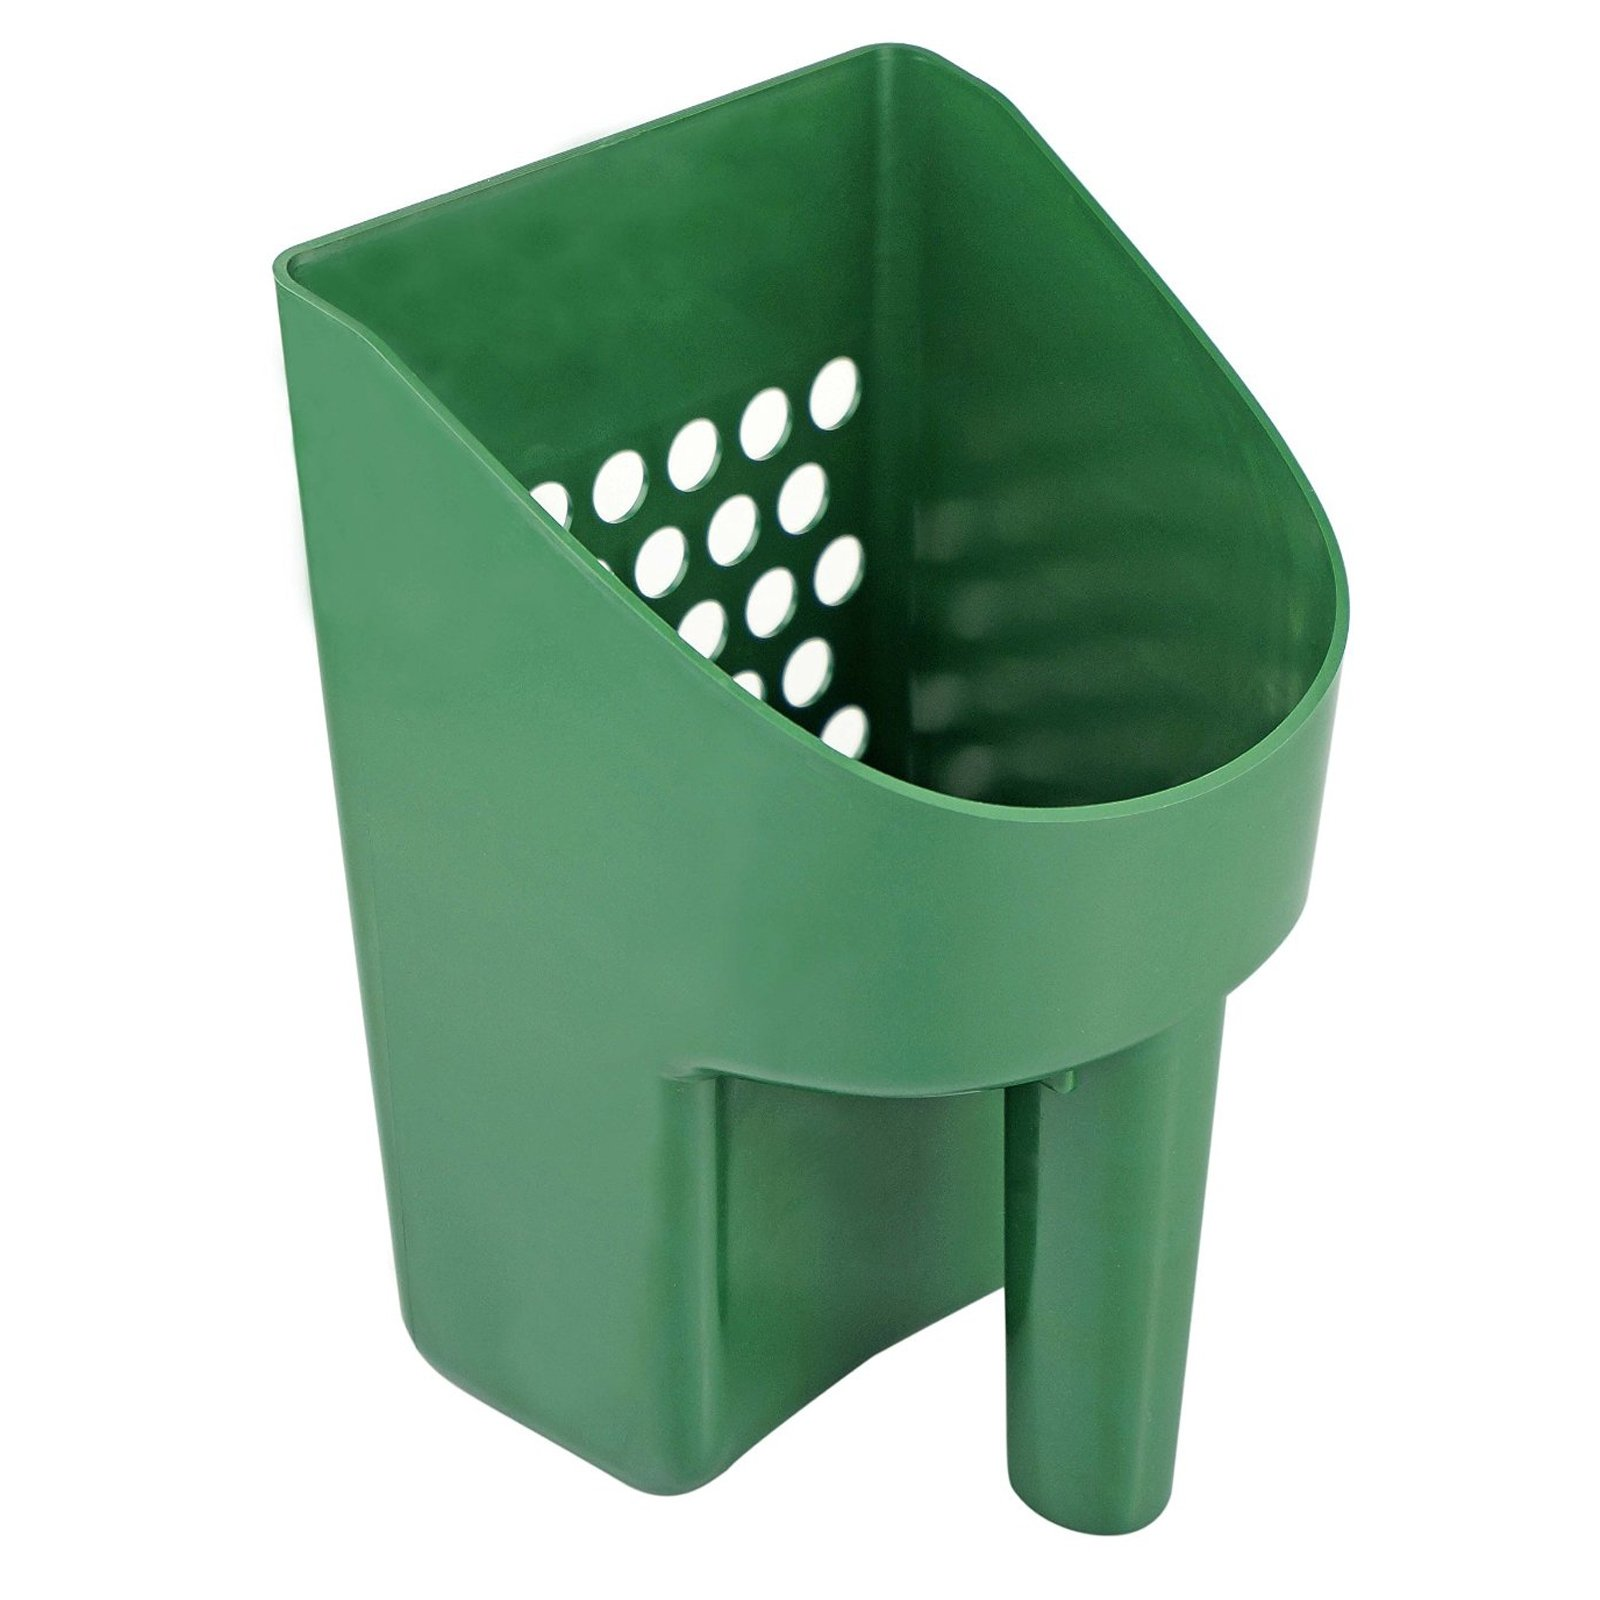 ASR Outdoor 8.5 Inch Green Sand Scooper Heavy Duty Plastic for Metal Detecting